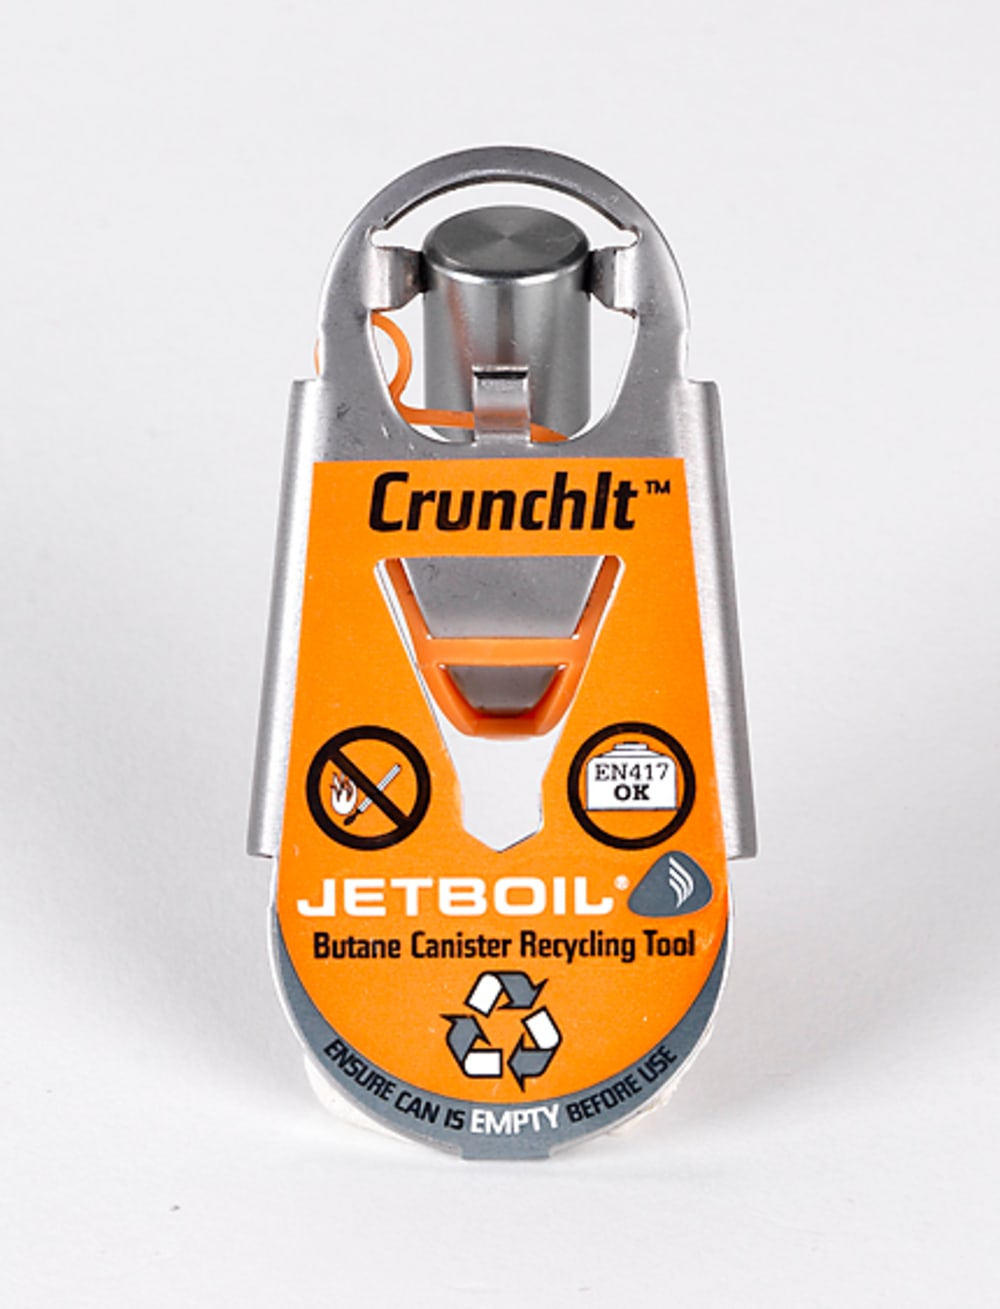 JETBOIL CrunchIt Butane Canister Recycling Tool NO SIZE